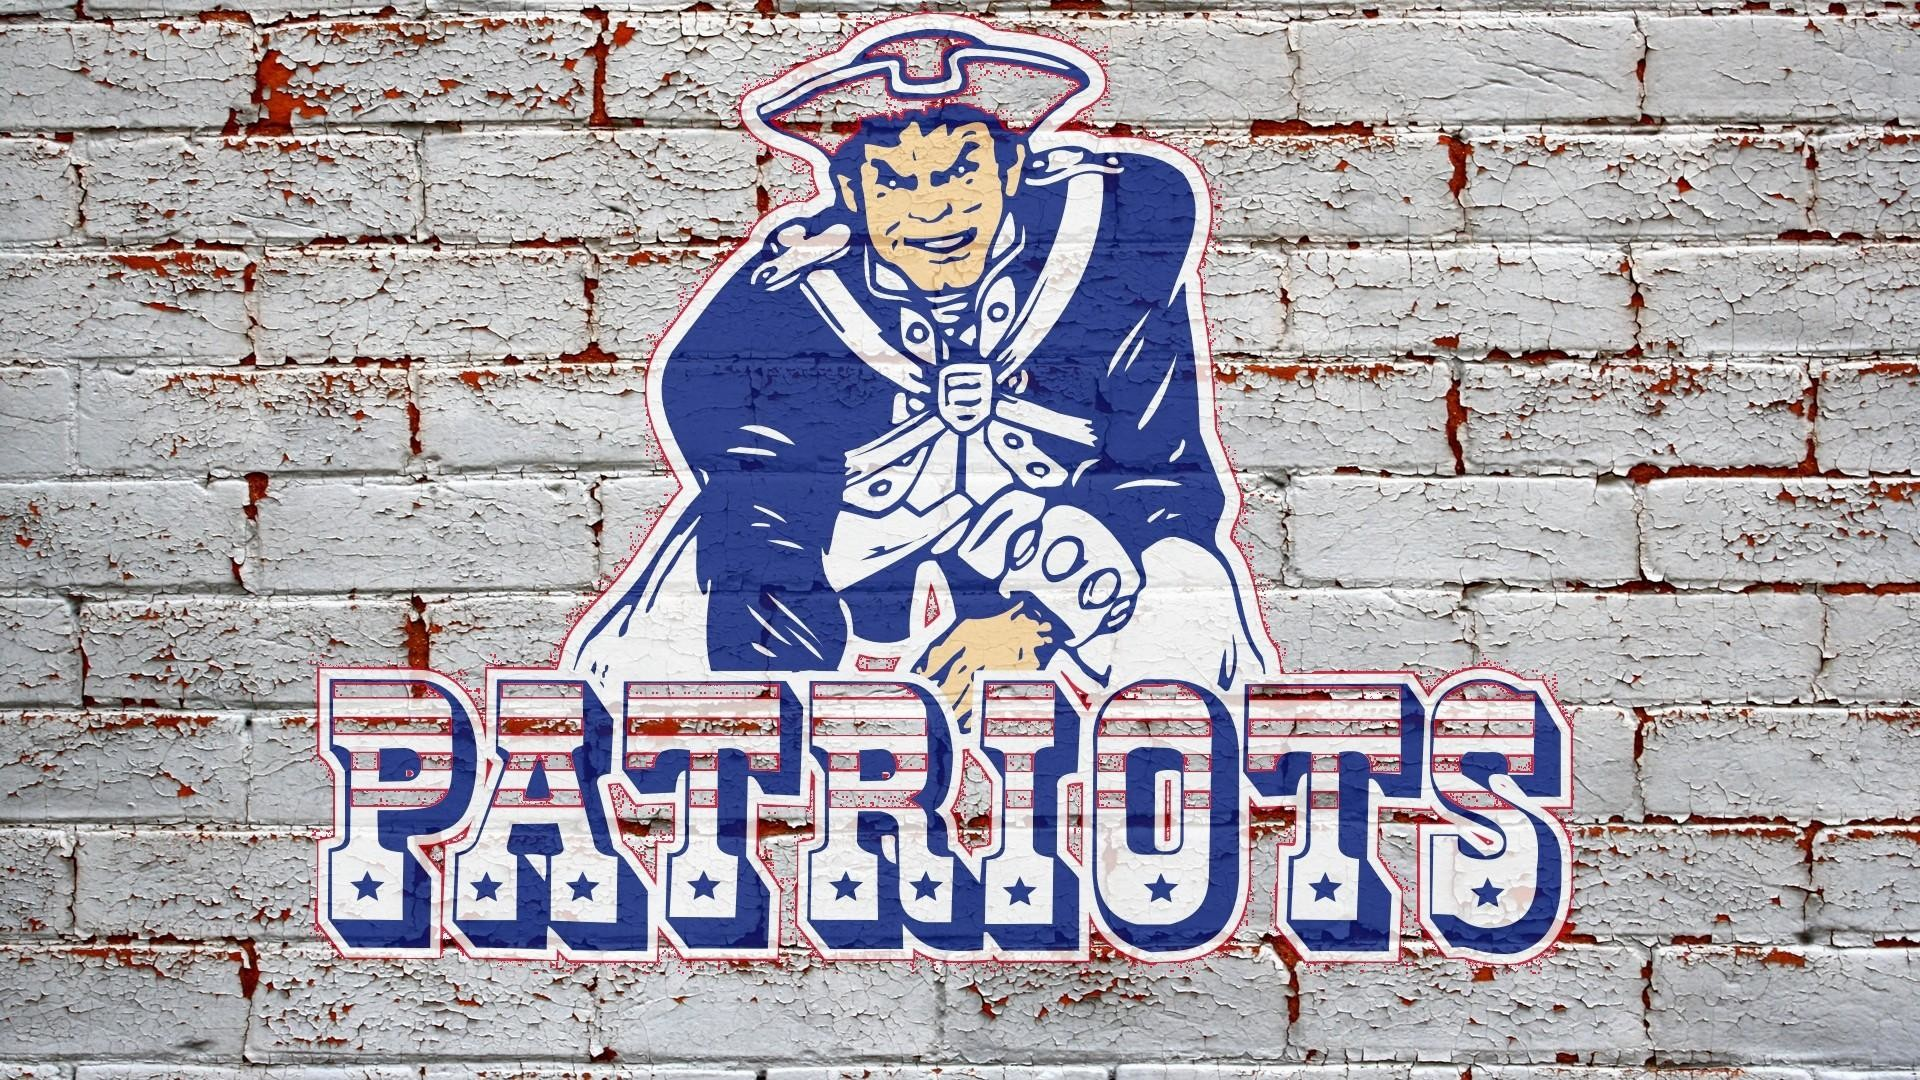 Google-Image-Result-for-http-www-sportshd-com-. high-quality-new-england- patriots-wallpaper-wp4007885